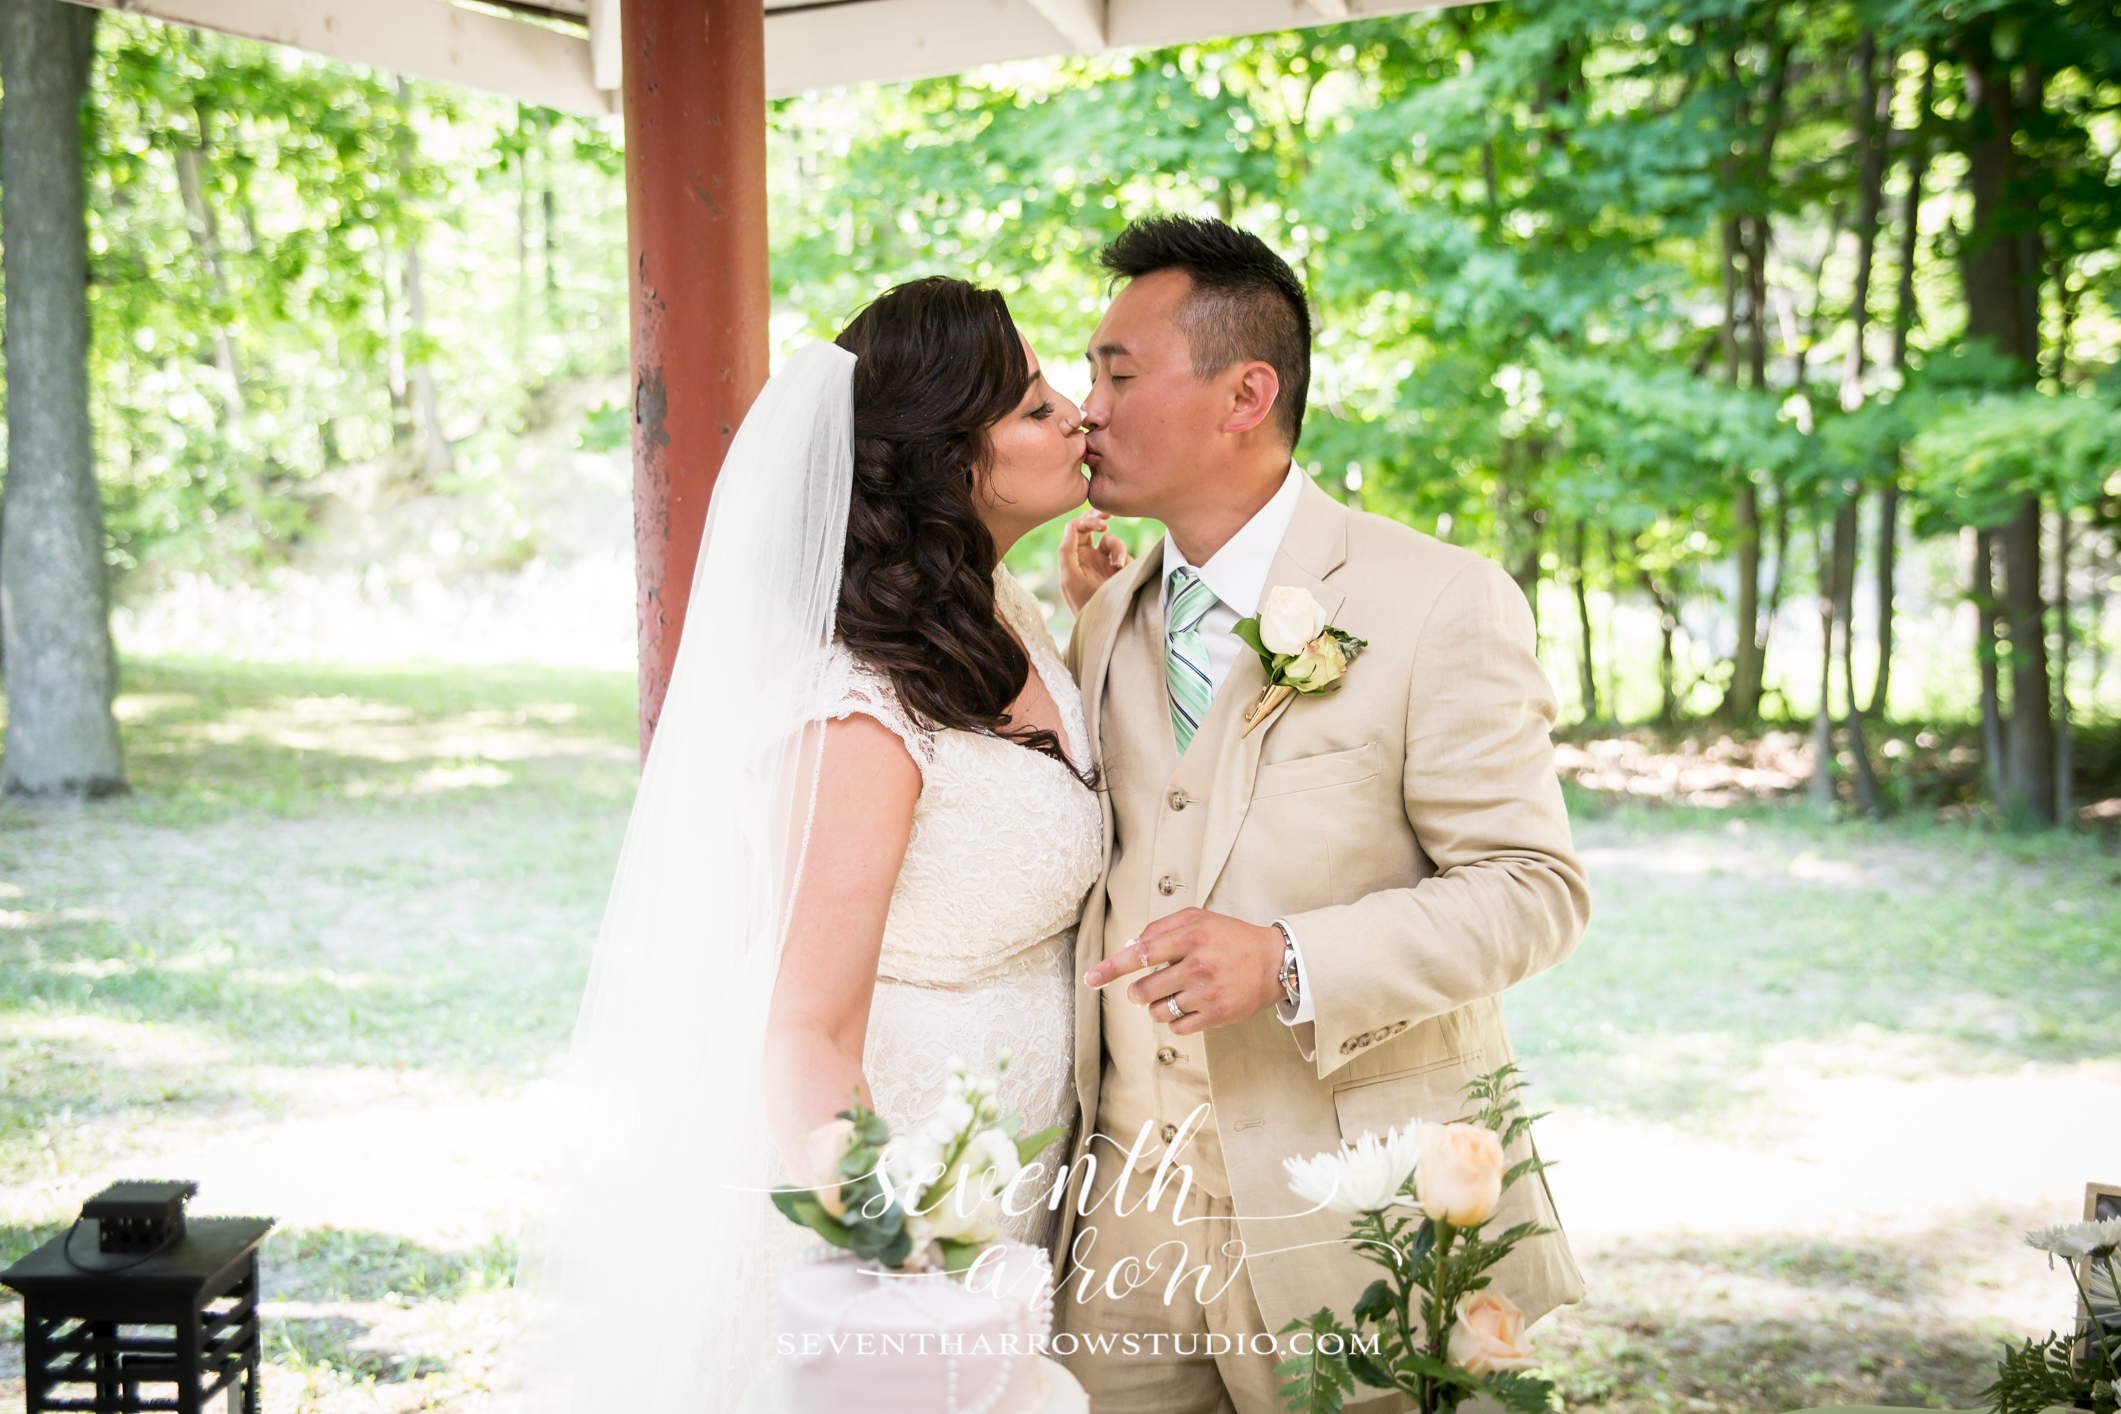 Buffalobestweddingphotography-52.jpg